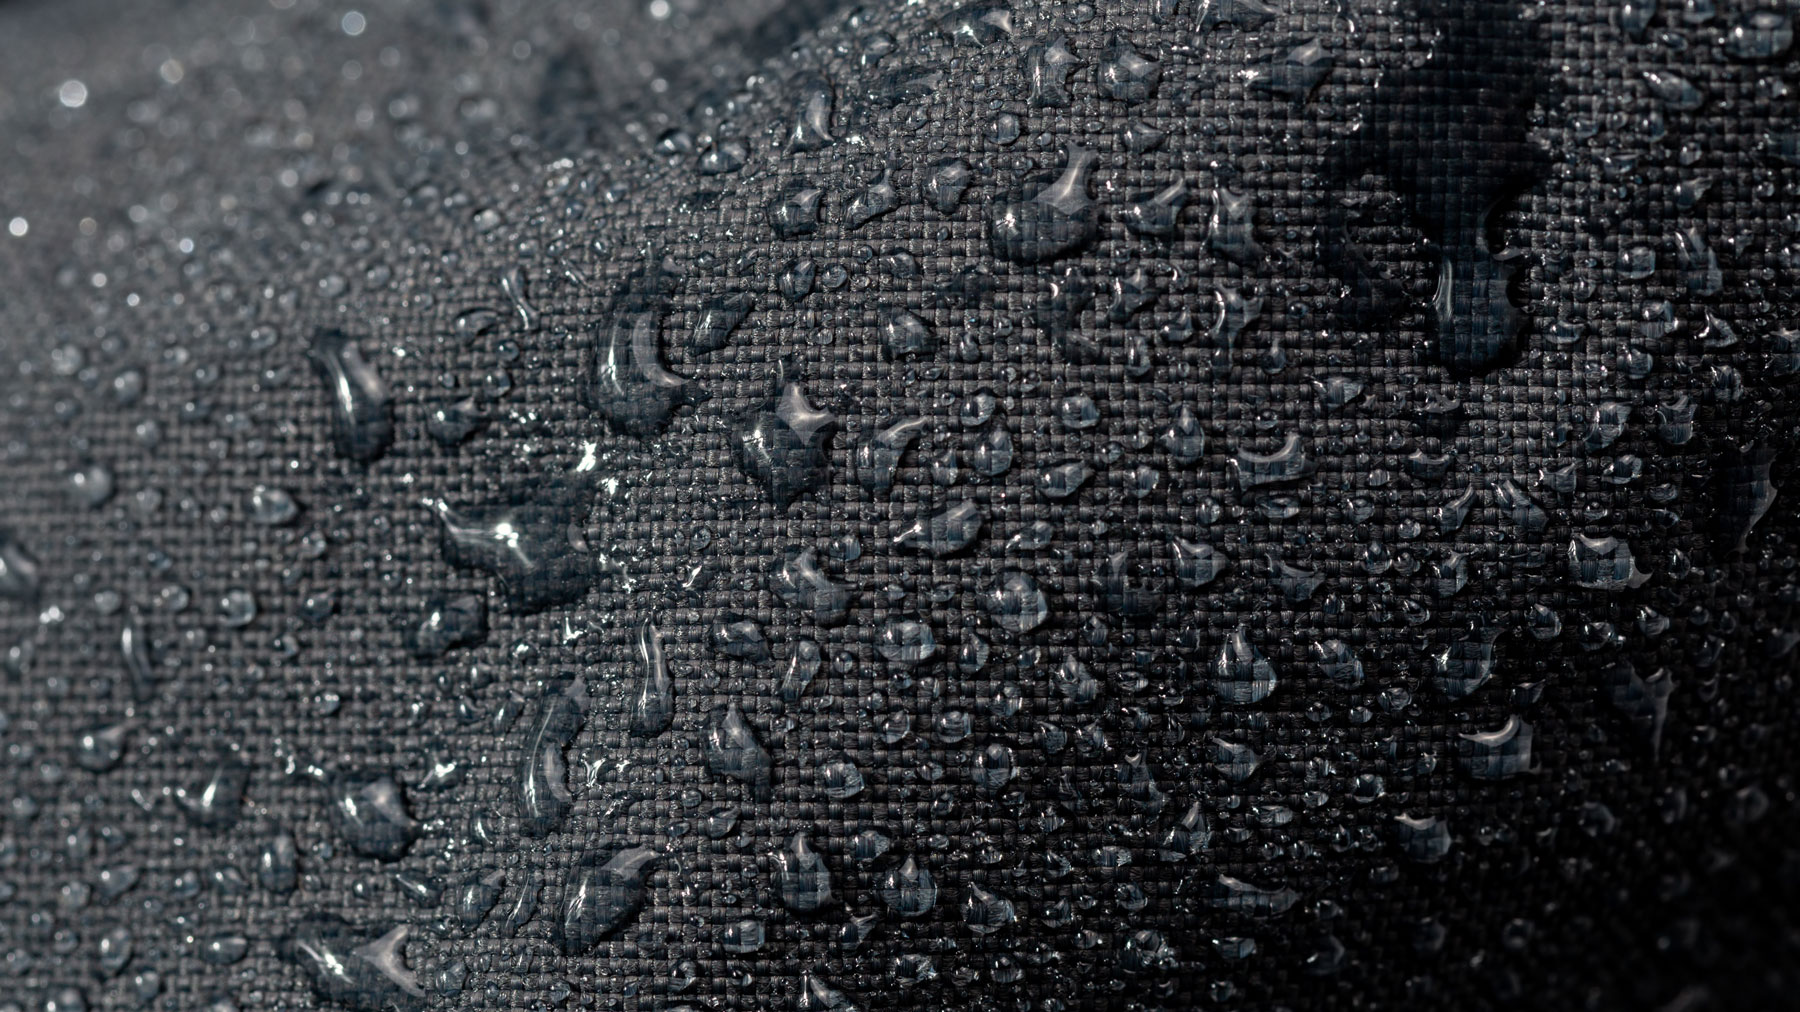 dark gray waterproof hydrophobic cloth closeup with water drops selective focus background